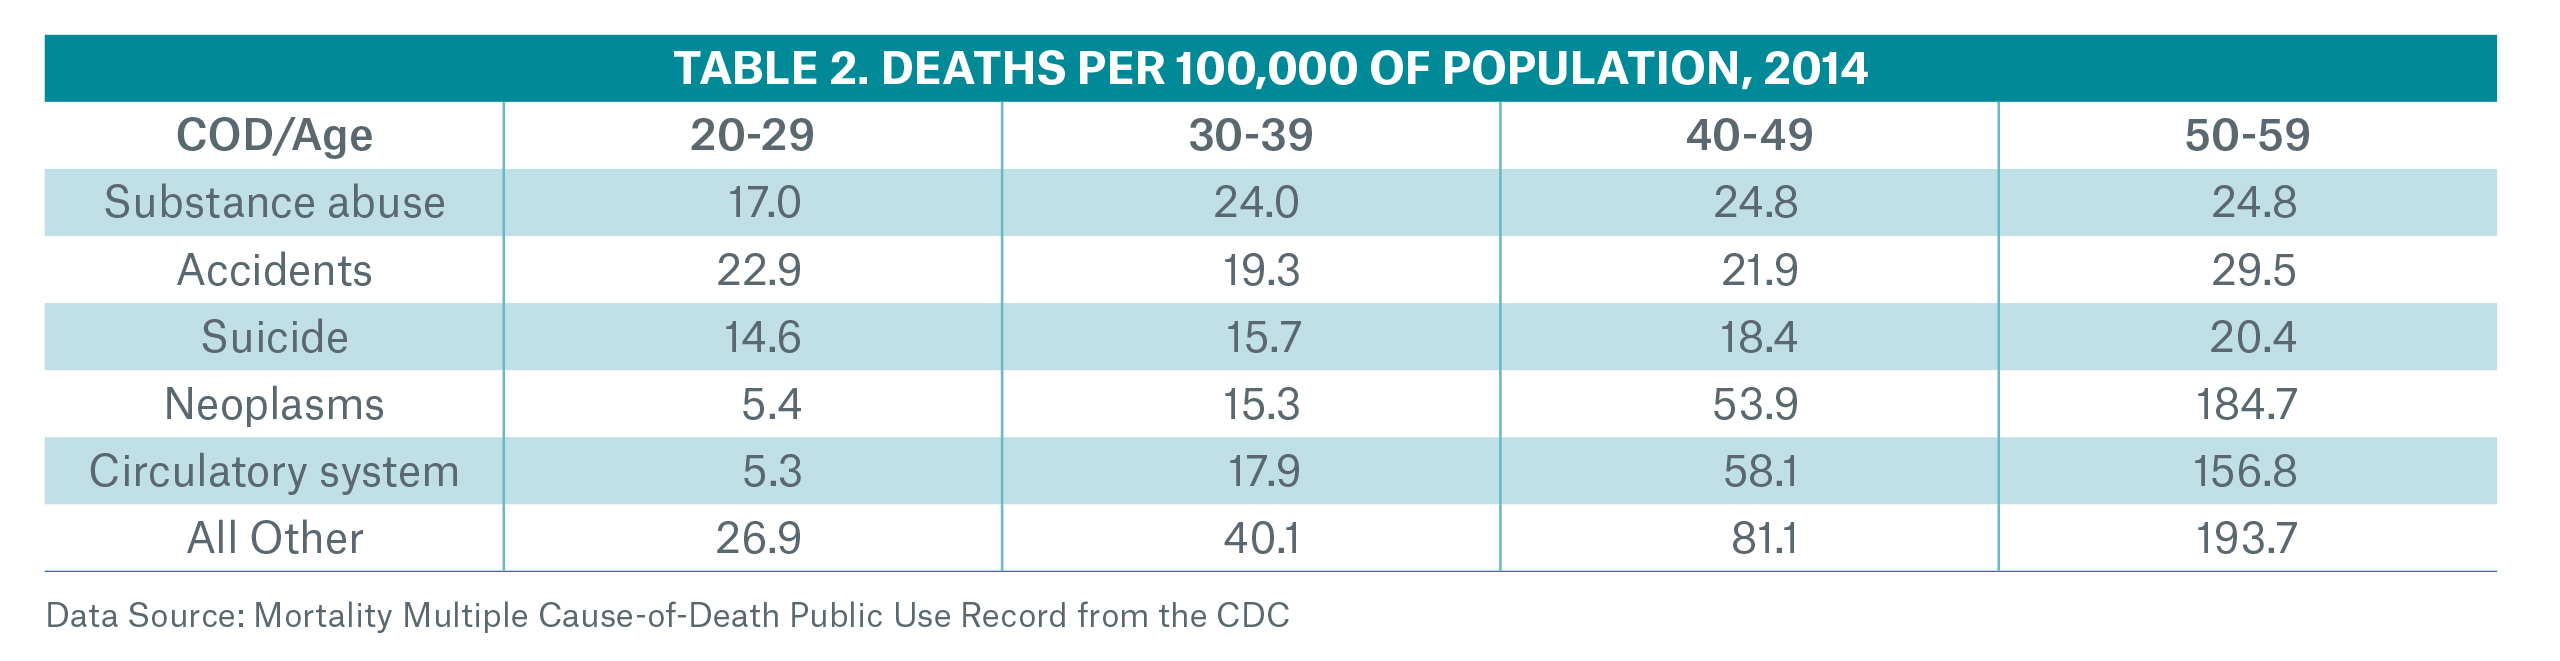 Deaths per 100,000 of Population Table